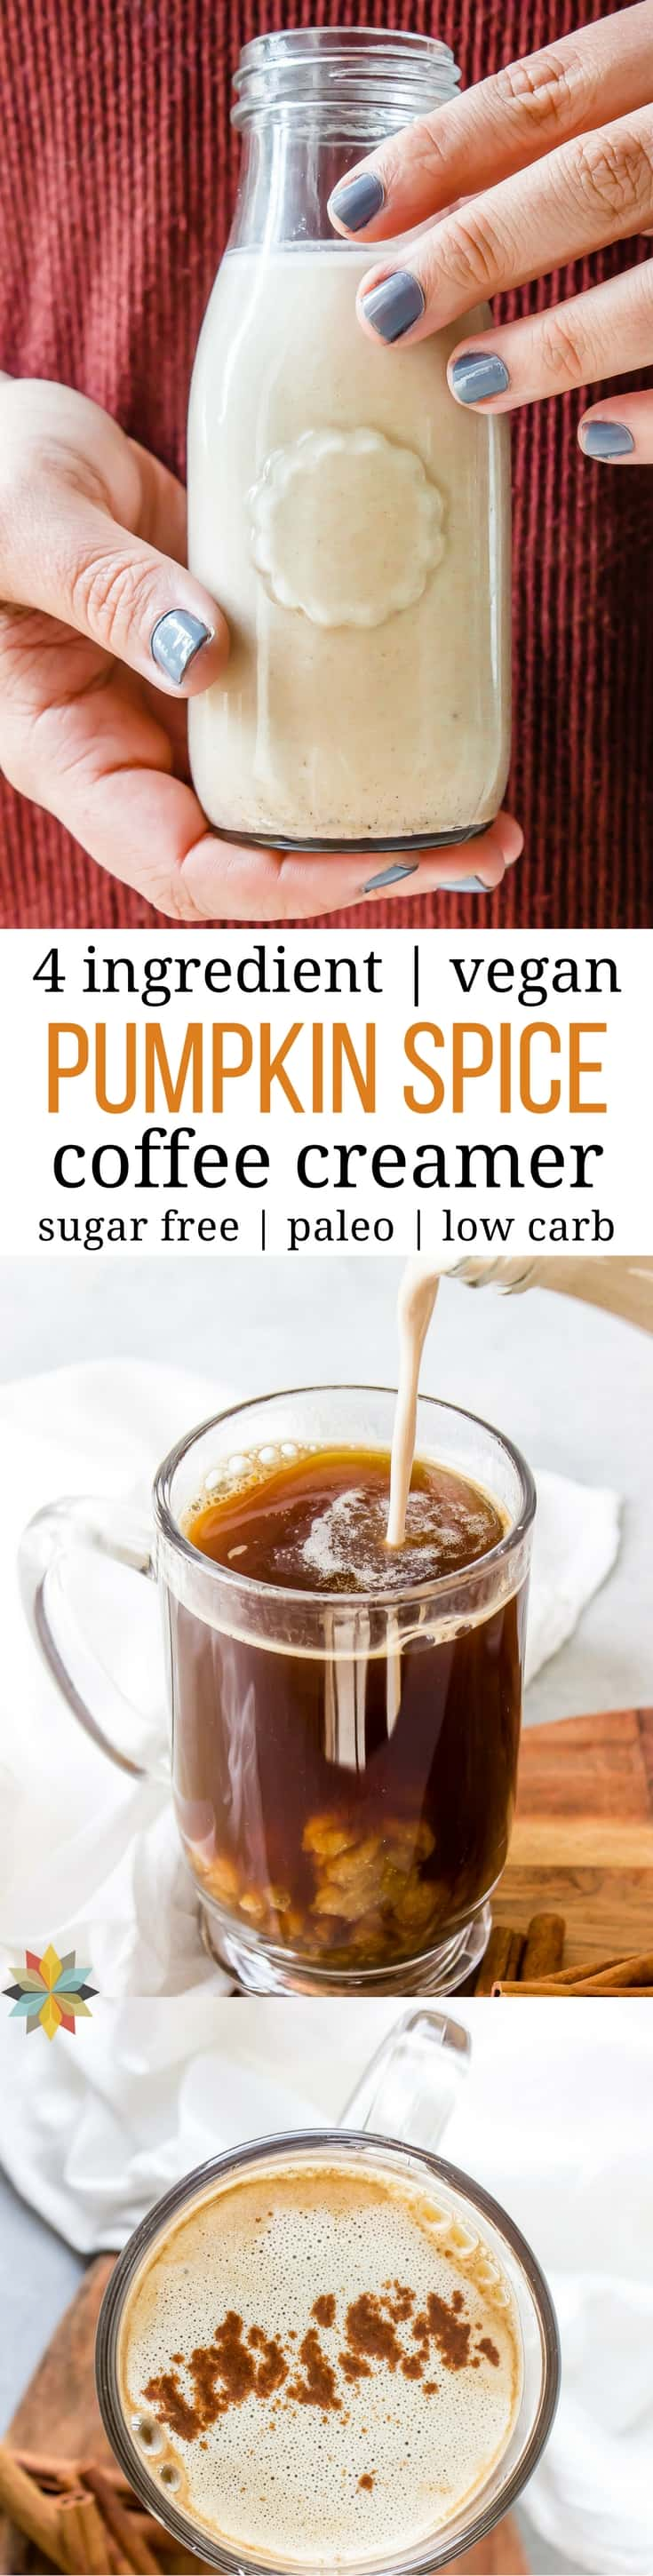 Vegan Pumpkin Coffee Creamer - dairy-free, paleo, THM:S, healthy, easy, low-carb, AIP, keto